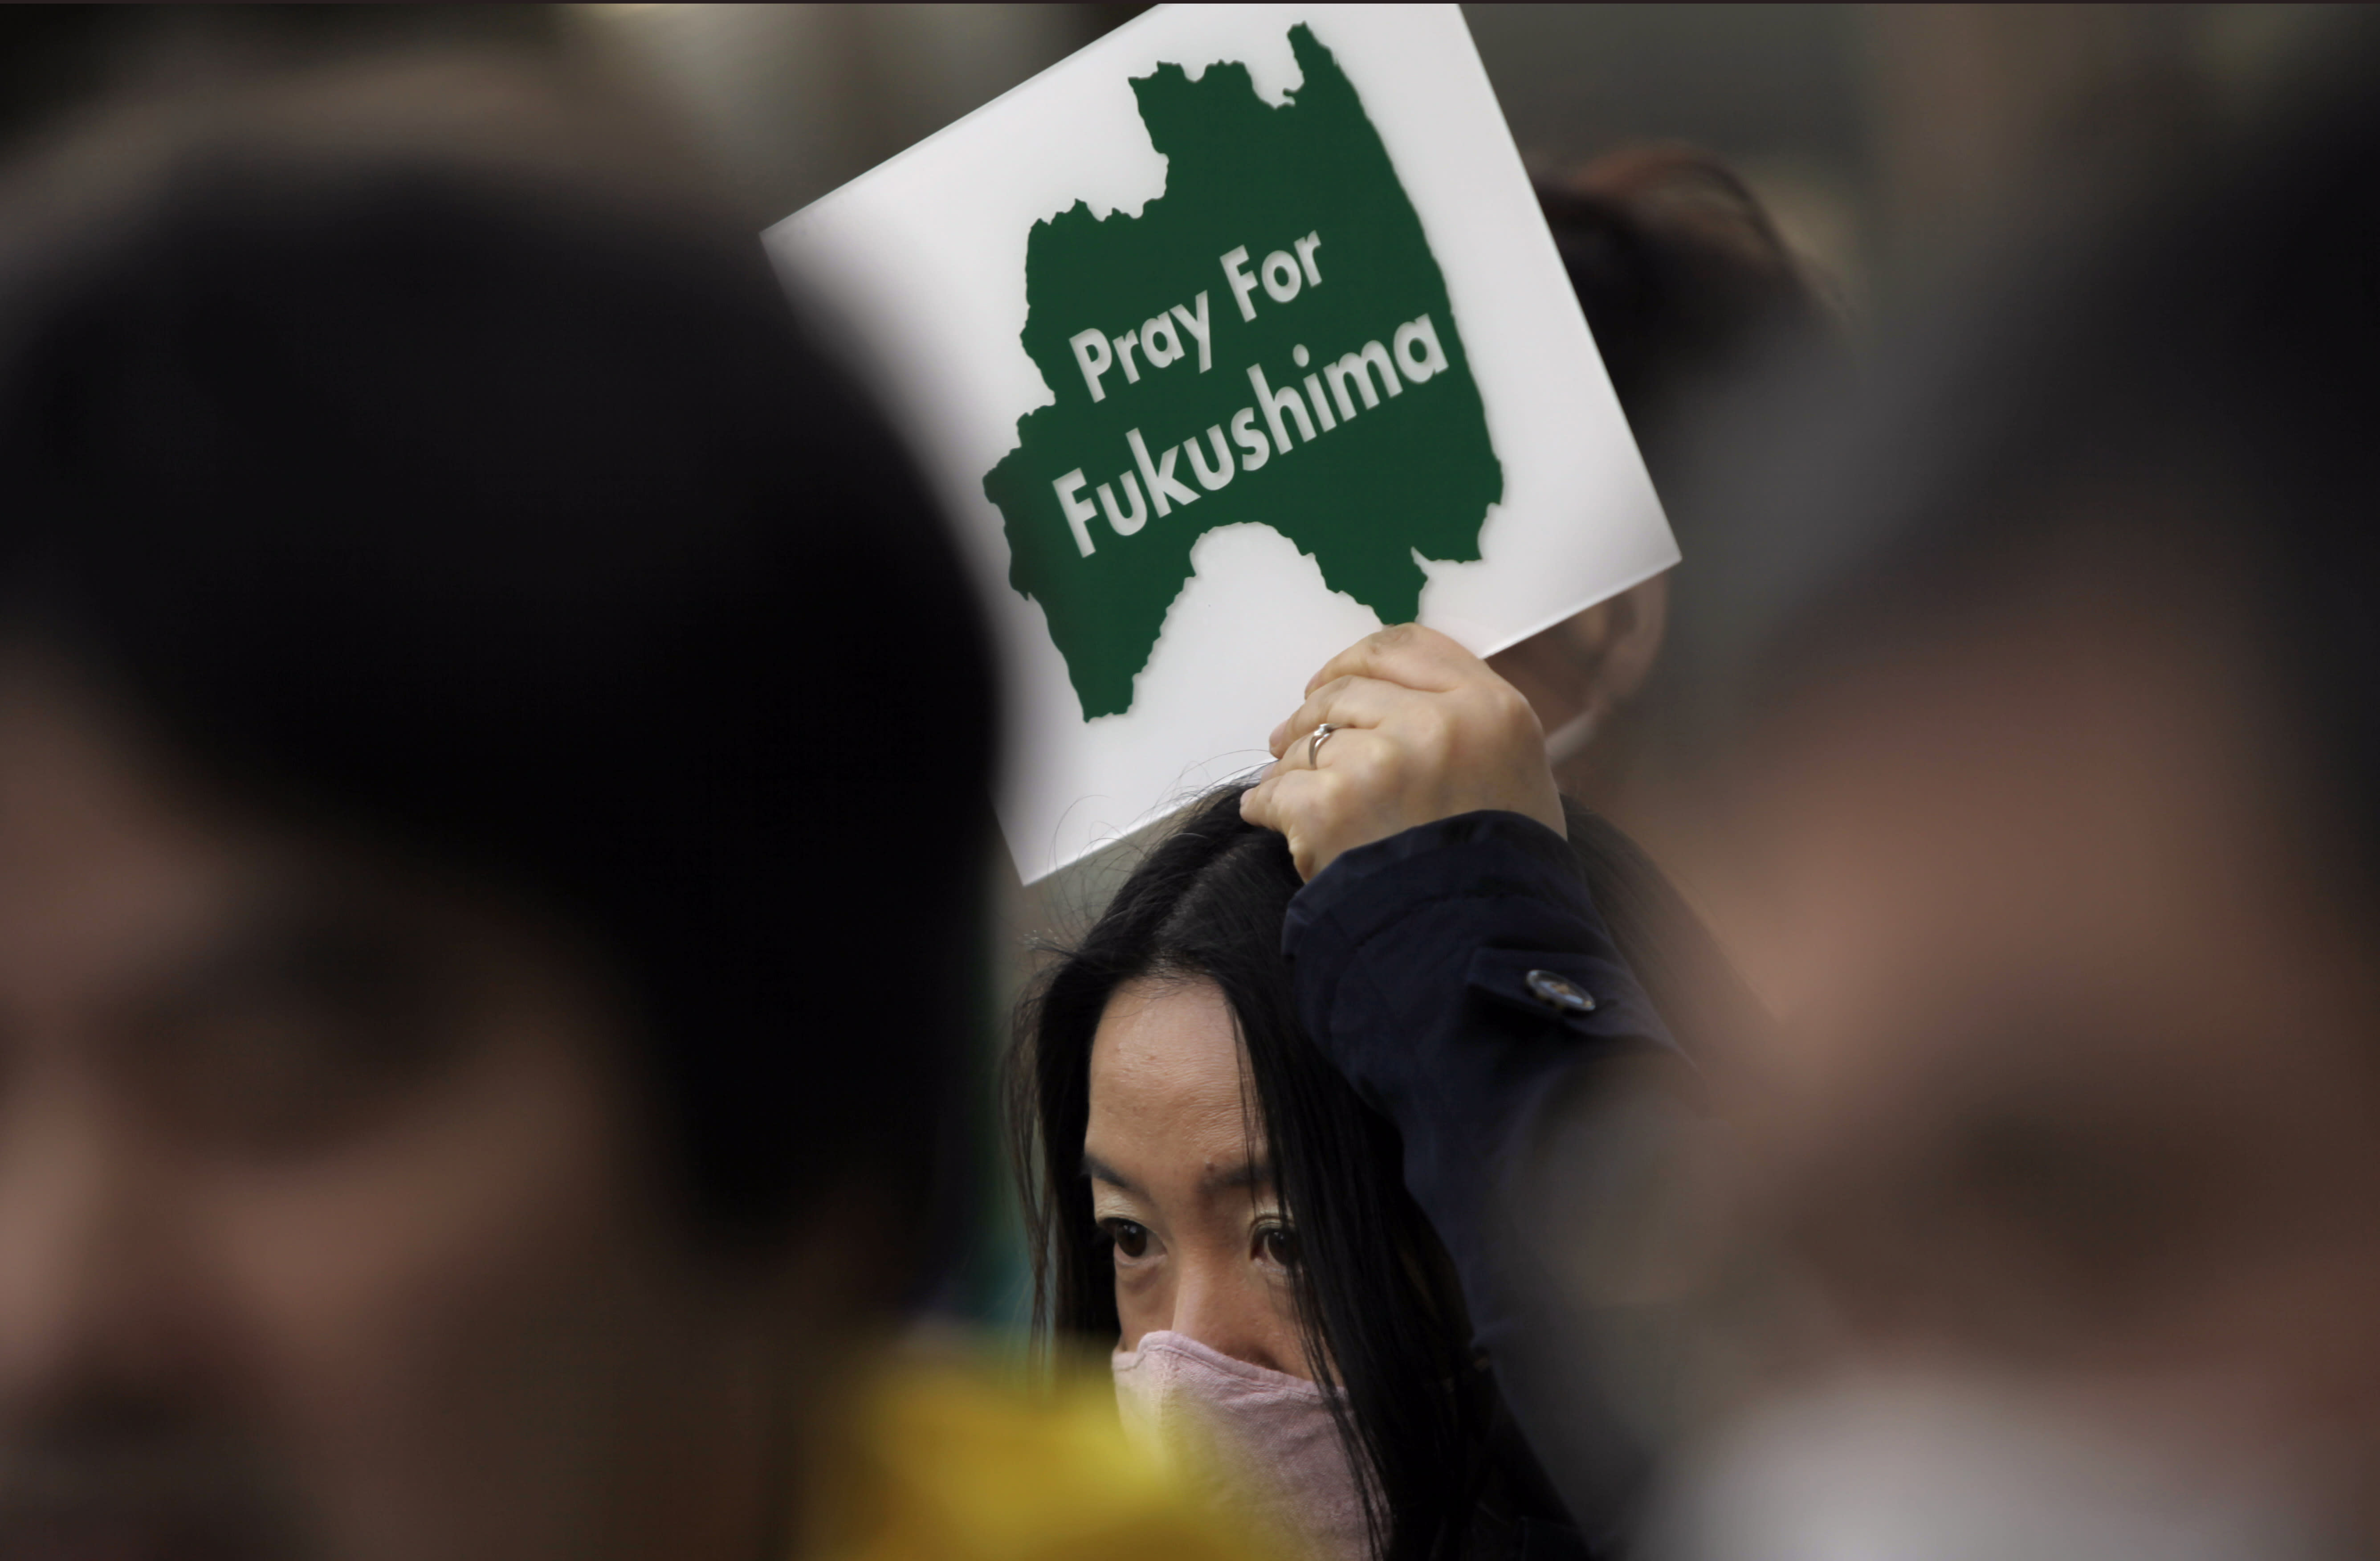 A protester holds a placard to pay tribute to the victims in Fukushima of the March 11, 2011 nuclear disaster following the earthquake and tsunami, during an anti-nuclear demonstration in Tokyo, Saturday, March 9, 2013. Gathering on a weekend ahead of the second anniversary of the March 11 quake and tsunami that sent Fukushima Dai-ichi plant into multiple meltdowns, demonstrators said they would never forget the world's worst nuclear catastrophe, and expressed alarm over the government's eagerness to restart reactors. (AP Photo/Junji Kurokawa)